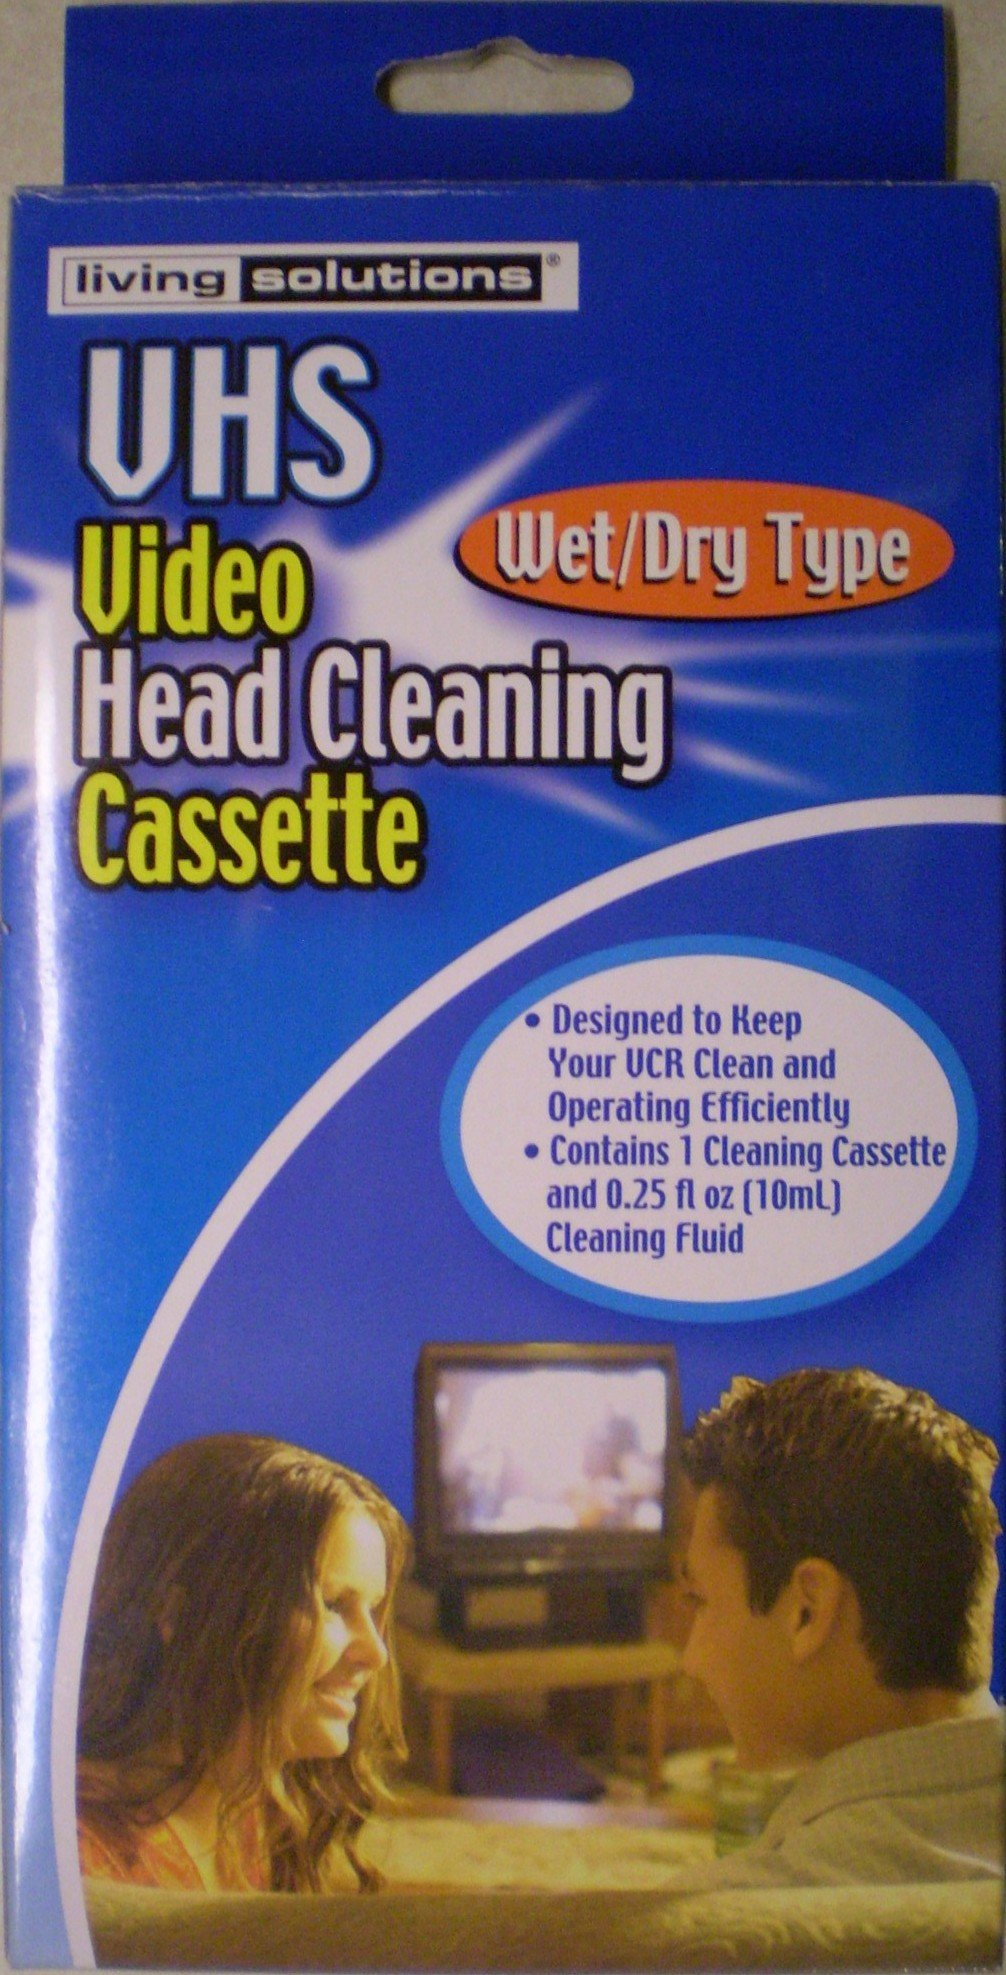 VHS Video Head Cleaning Cassette (wet / dry)